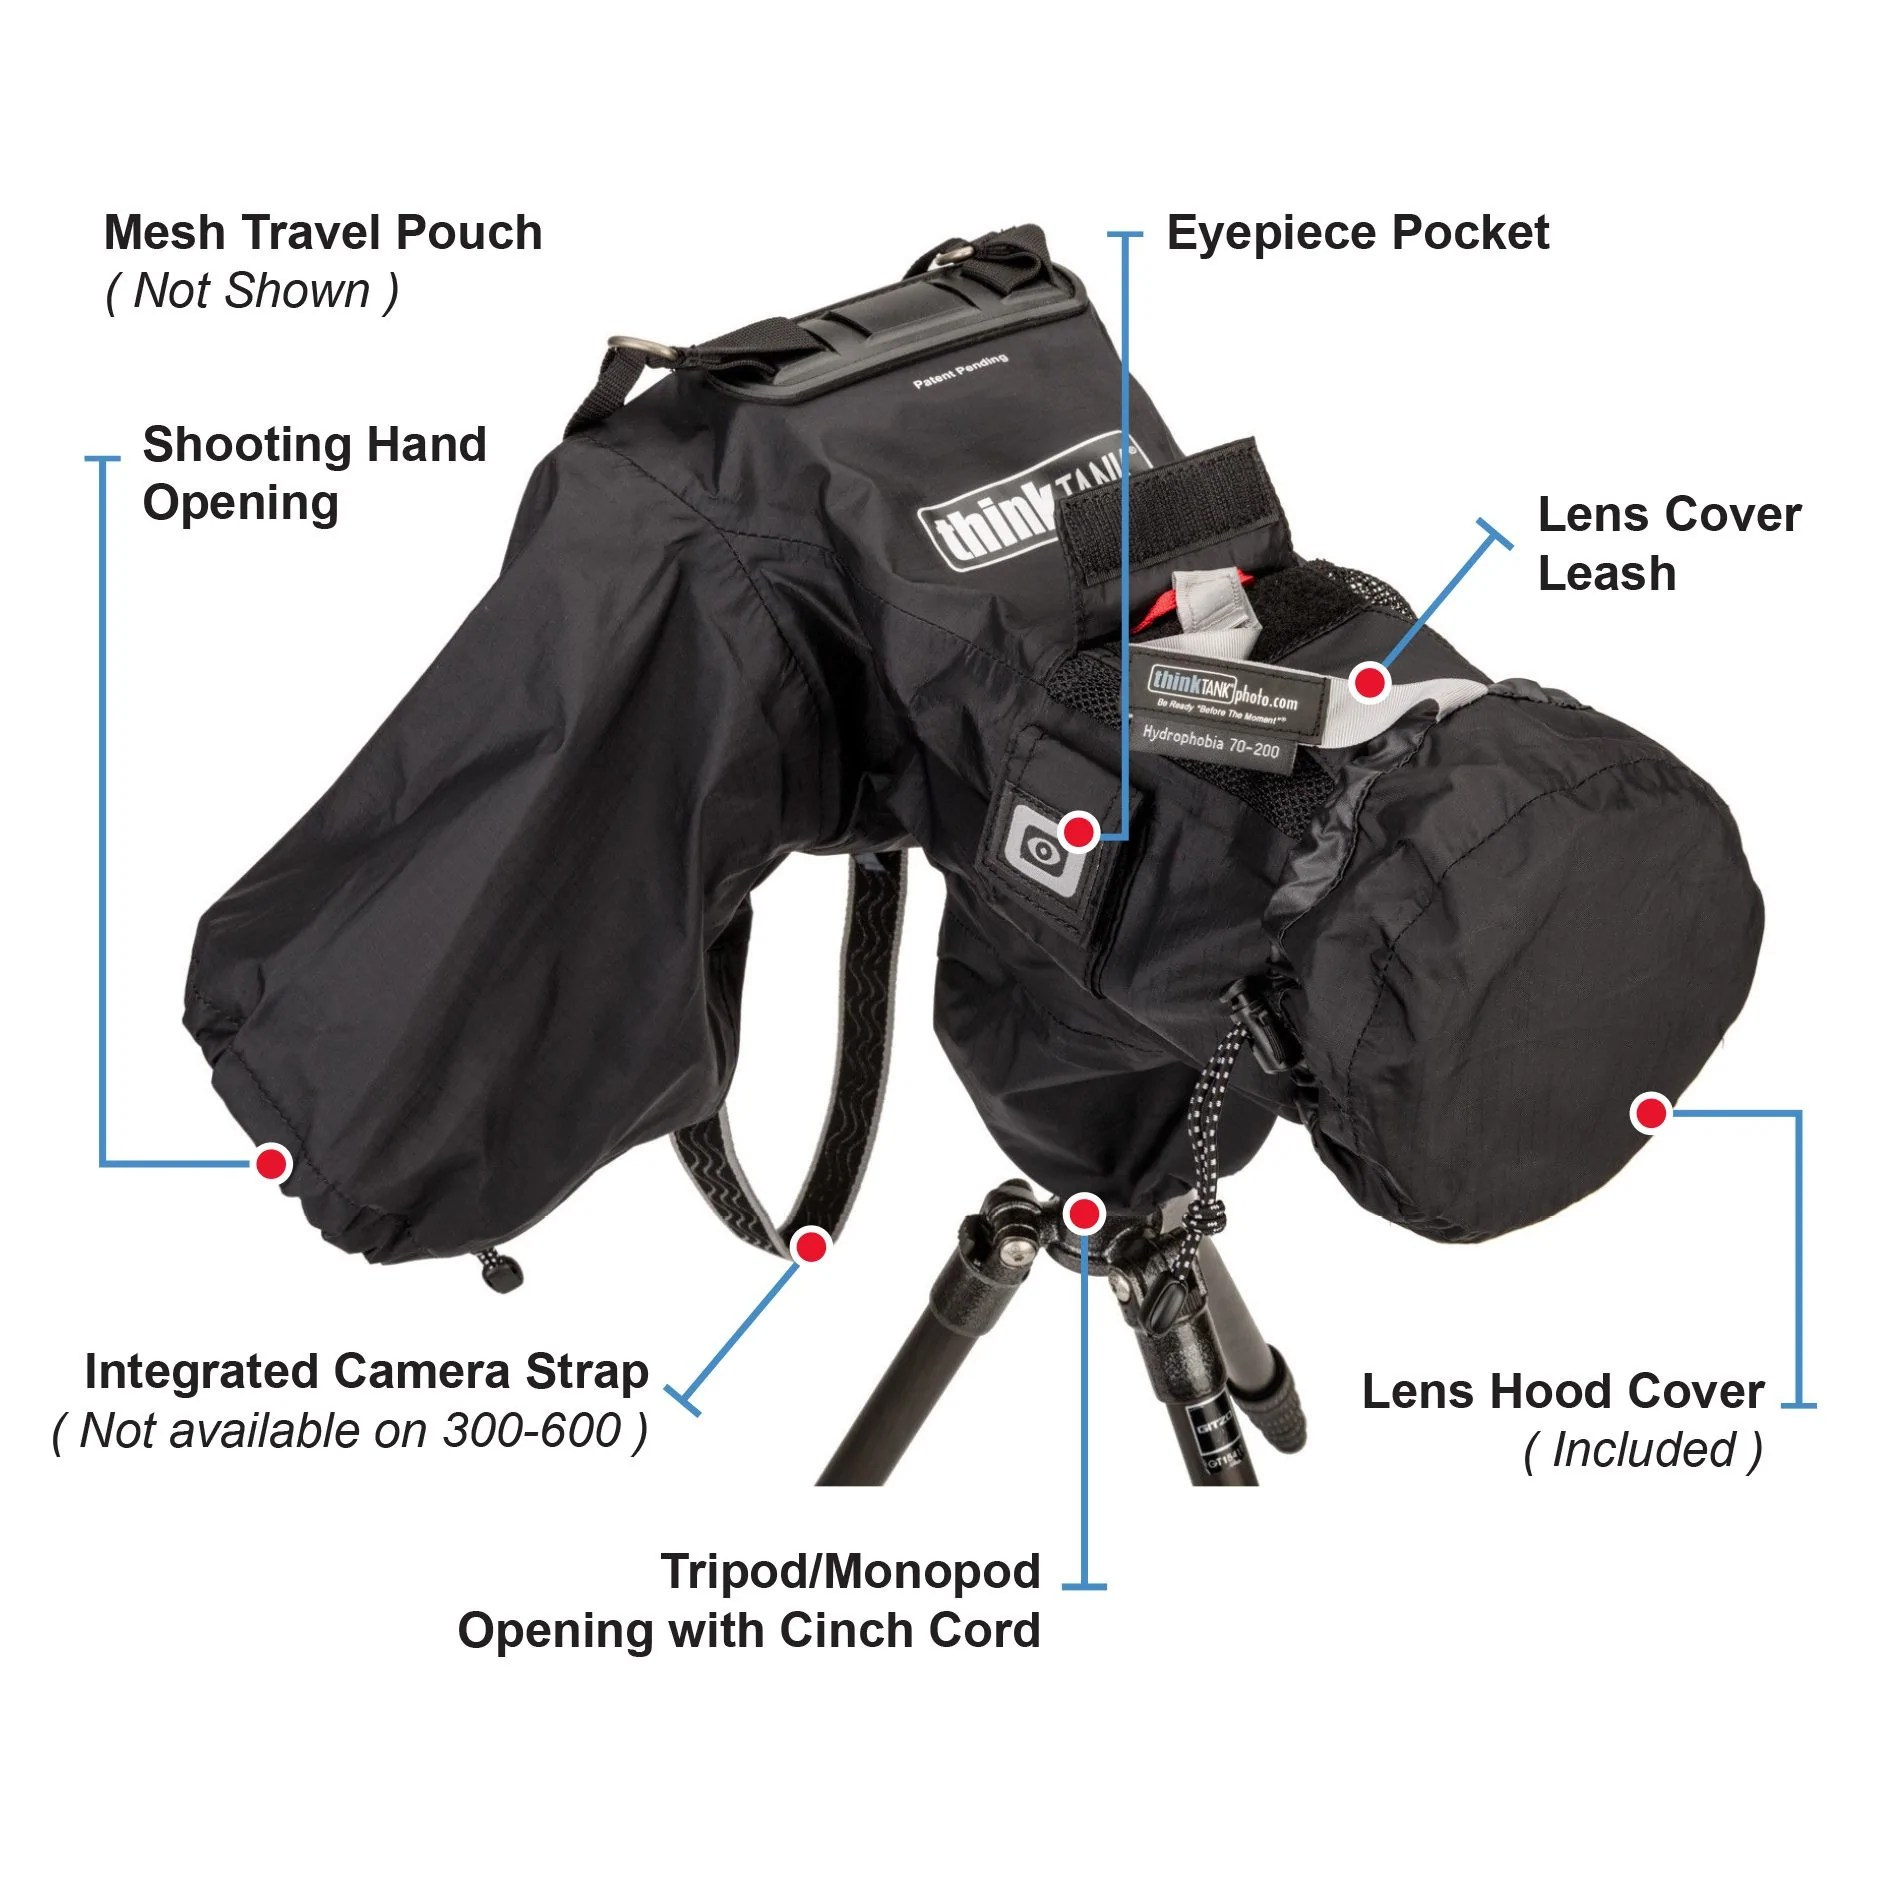 Sturdy For Dslr Cameras Keeps Your Gear Dry Dslr Cameras Keeps Your Gear Dry Think Tank Photo Retrospective 30 Think Tank Photo Turnstyle 20 Protected Thinktank Photo dpreview Think Tank Photo